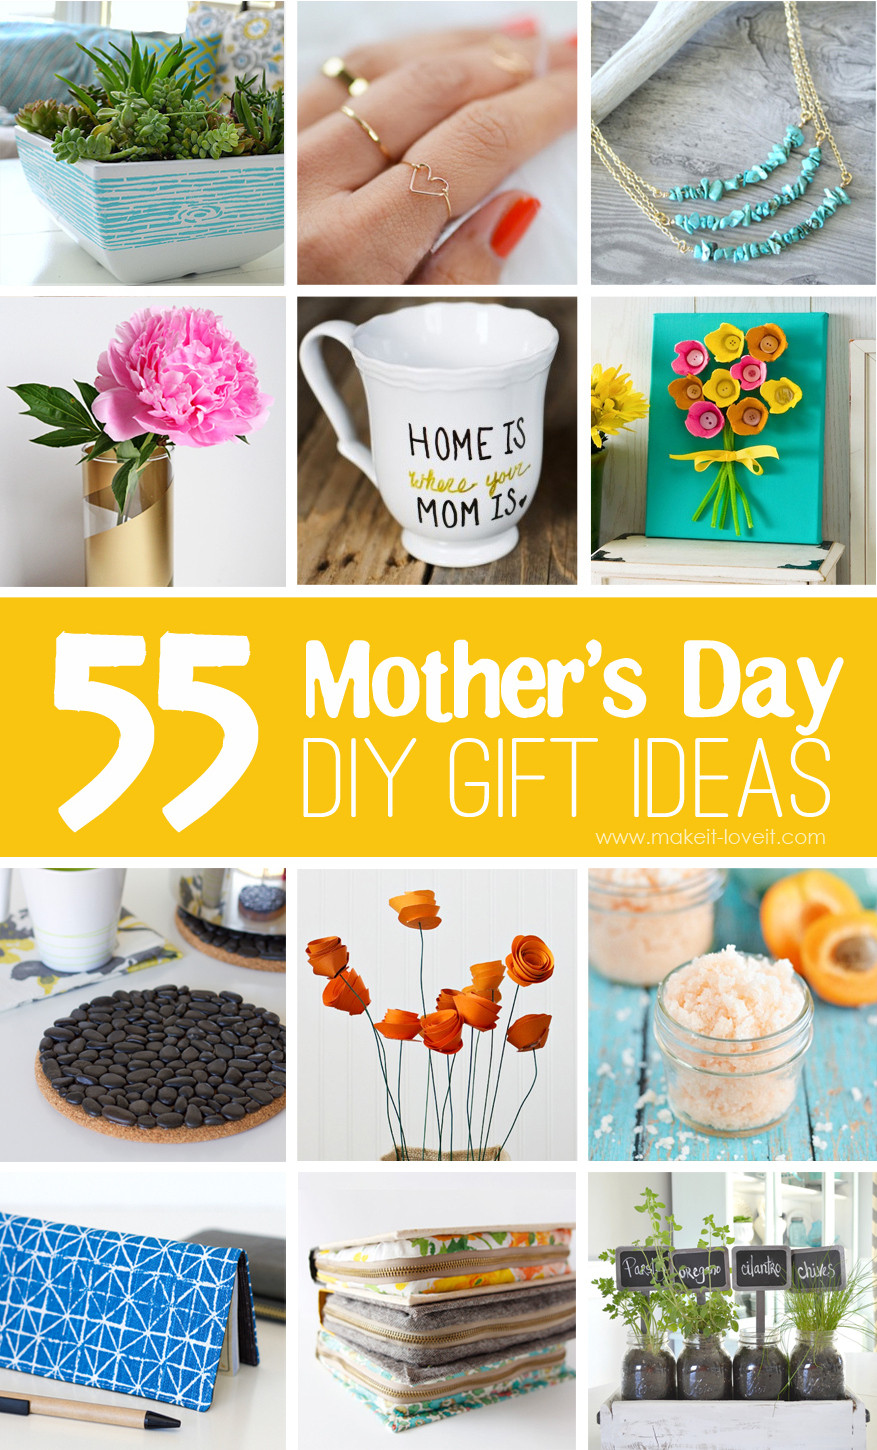 Best ideas about DIY Mother'S Day Gifts . Save or Pin 55 Mother s Day DIY Gift Ideas Now.